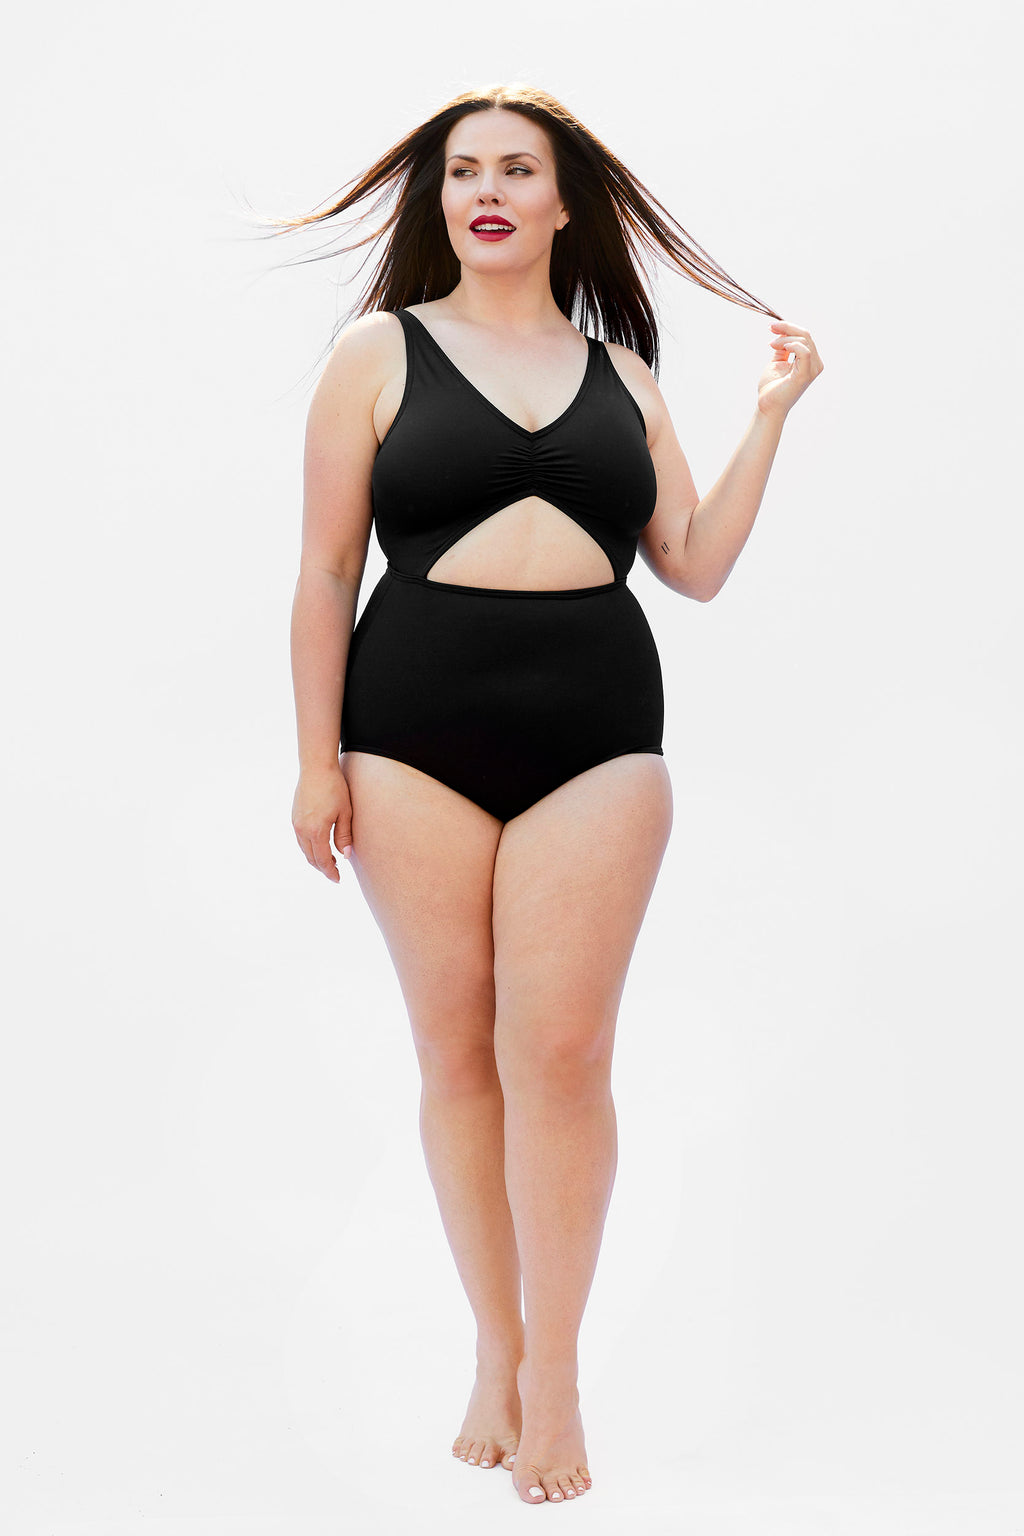 black swimsuit for plus size women made in Canada by Bathing Belle Swimwear